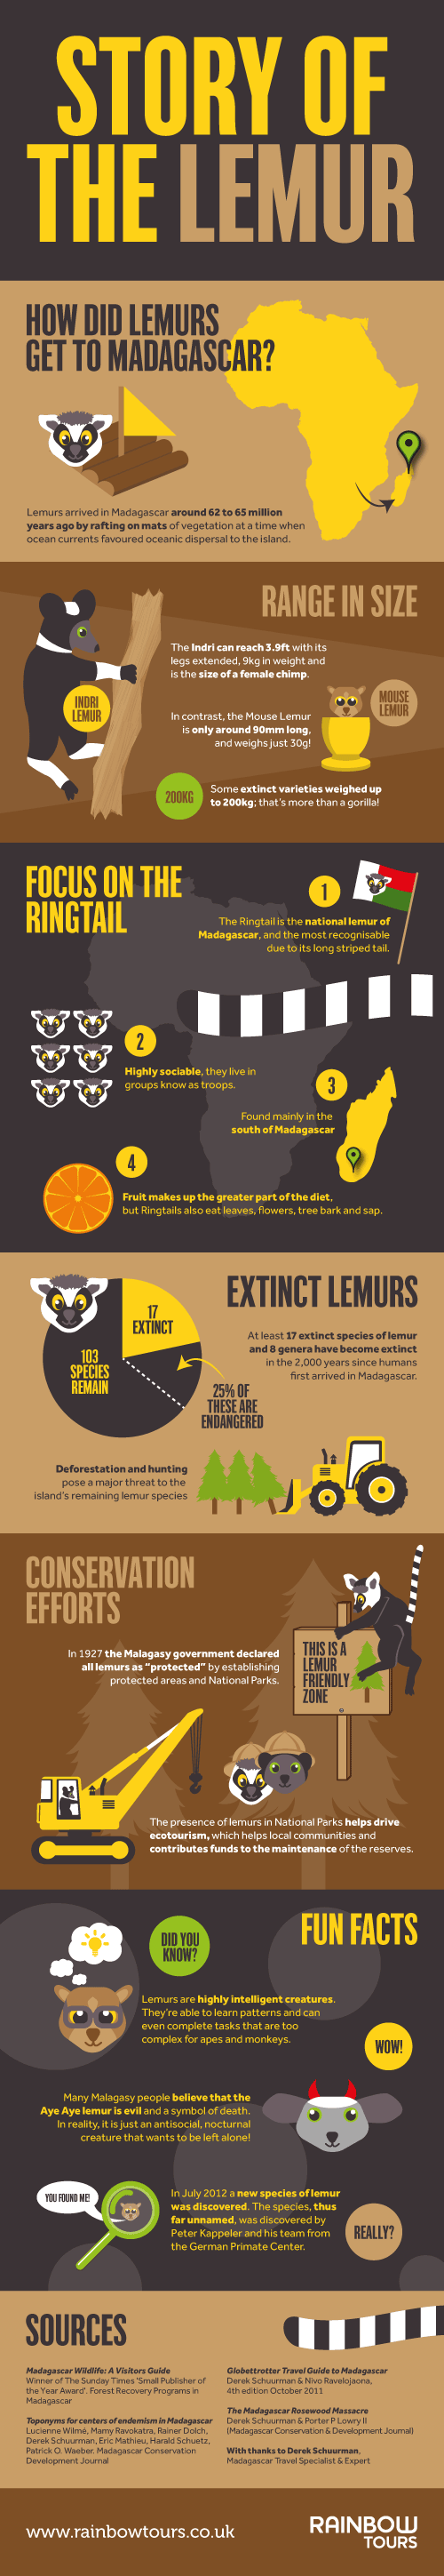 lemur facts infographic